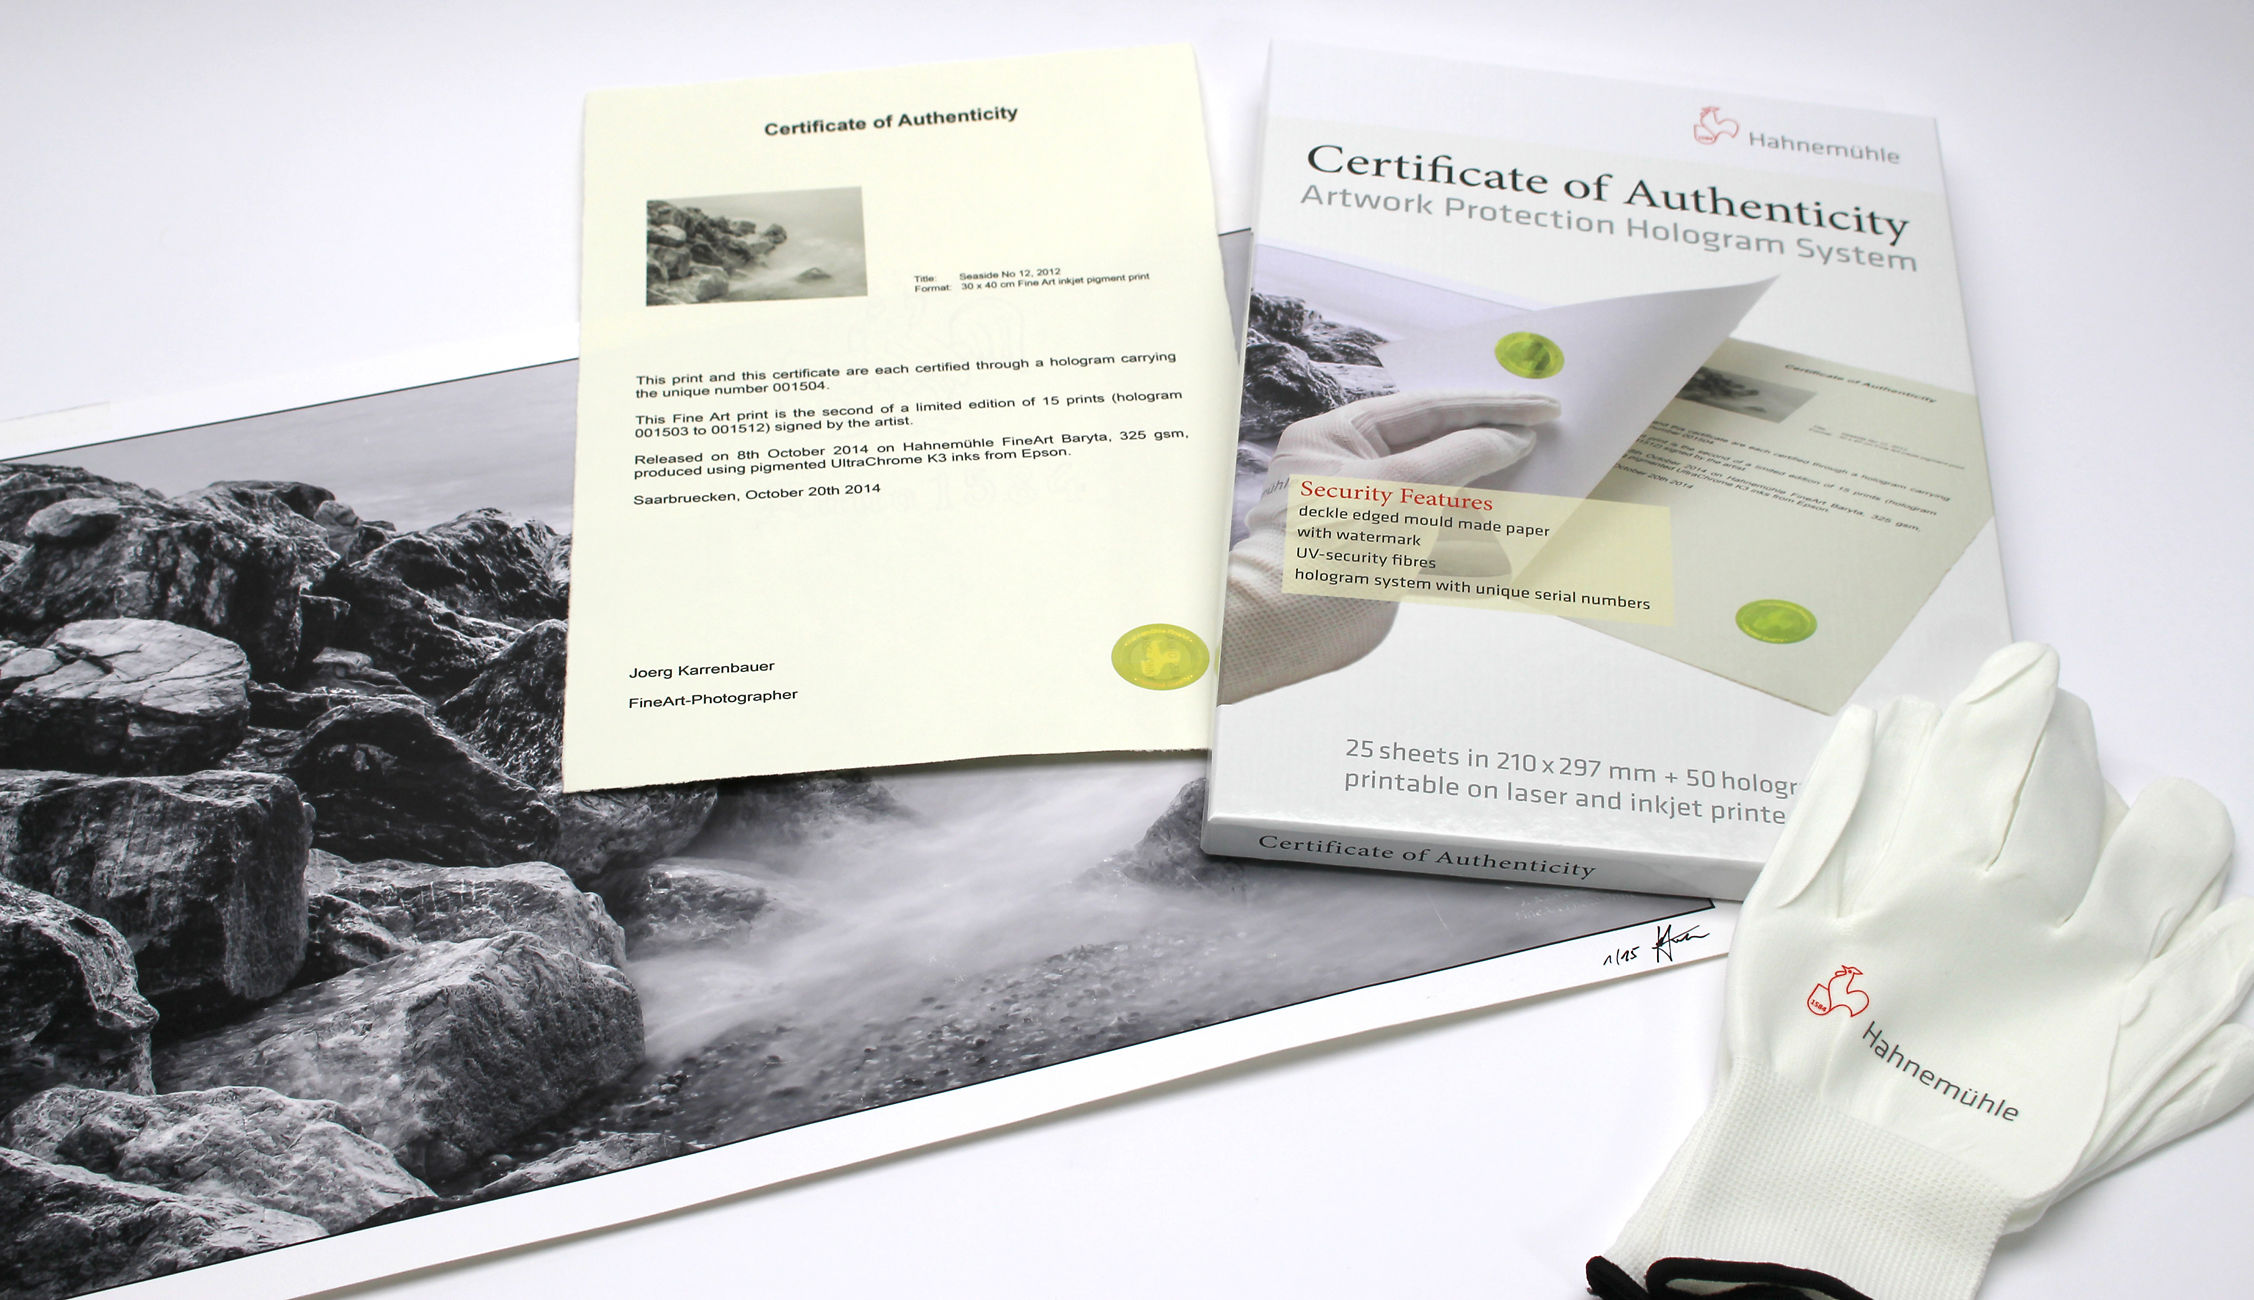 Hahnemühle Authenticity Certificates Image